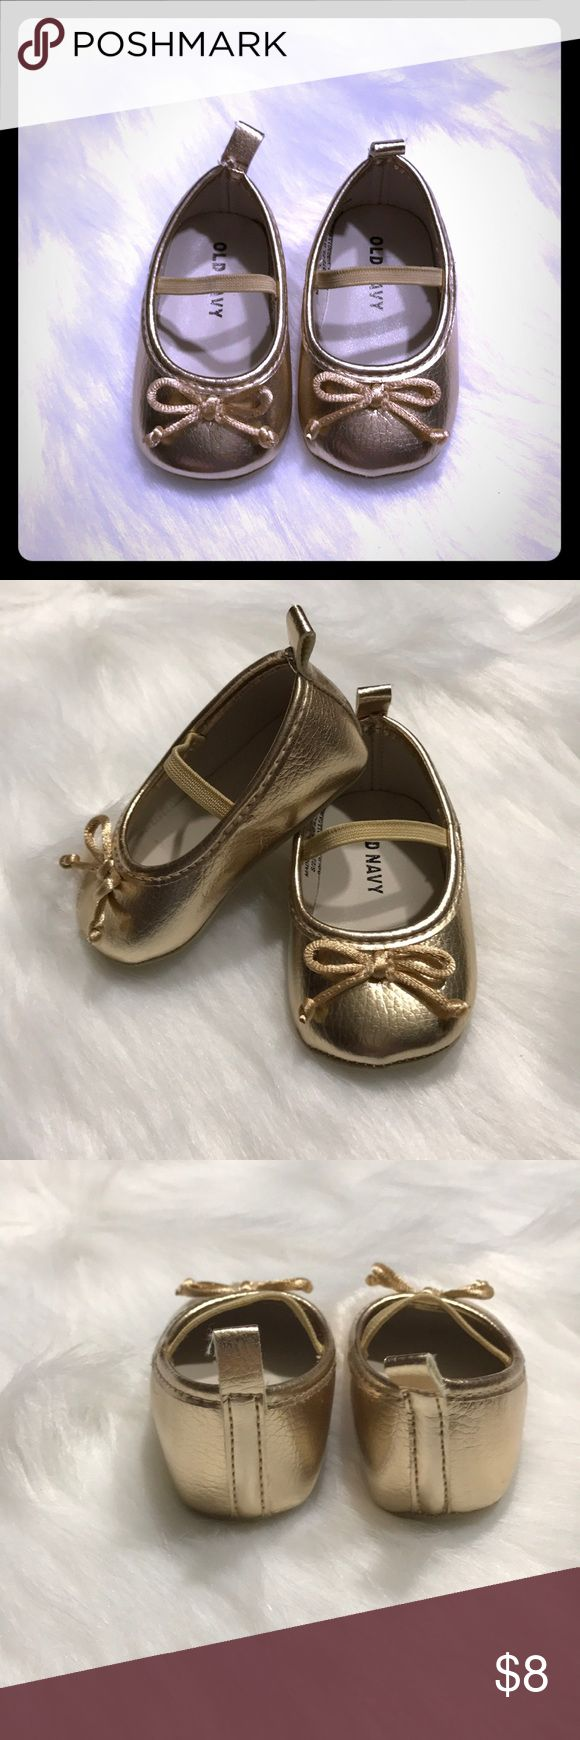 Old Navy Gold ballet shoes with Bow Gold ballet shoes with Bow. Brand New, never worn. Infant size 0 or 3-6 months Old Navy Shoes Sandals & Flip Flops